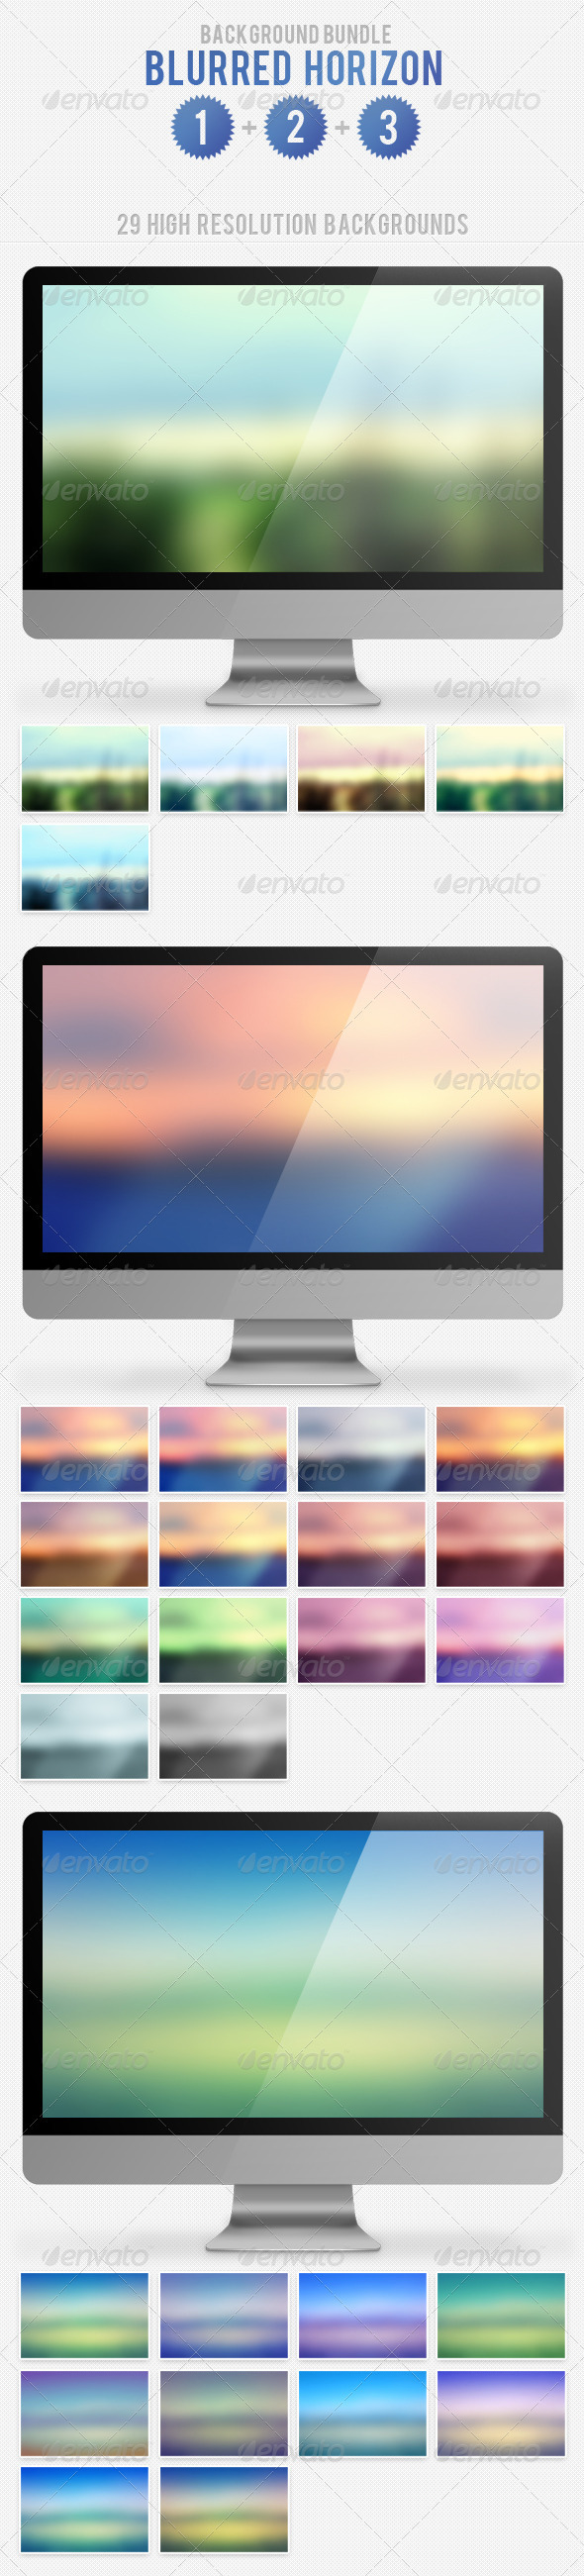 Blurred Horizon Background Bundle - Nature Backgrounds